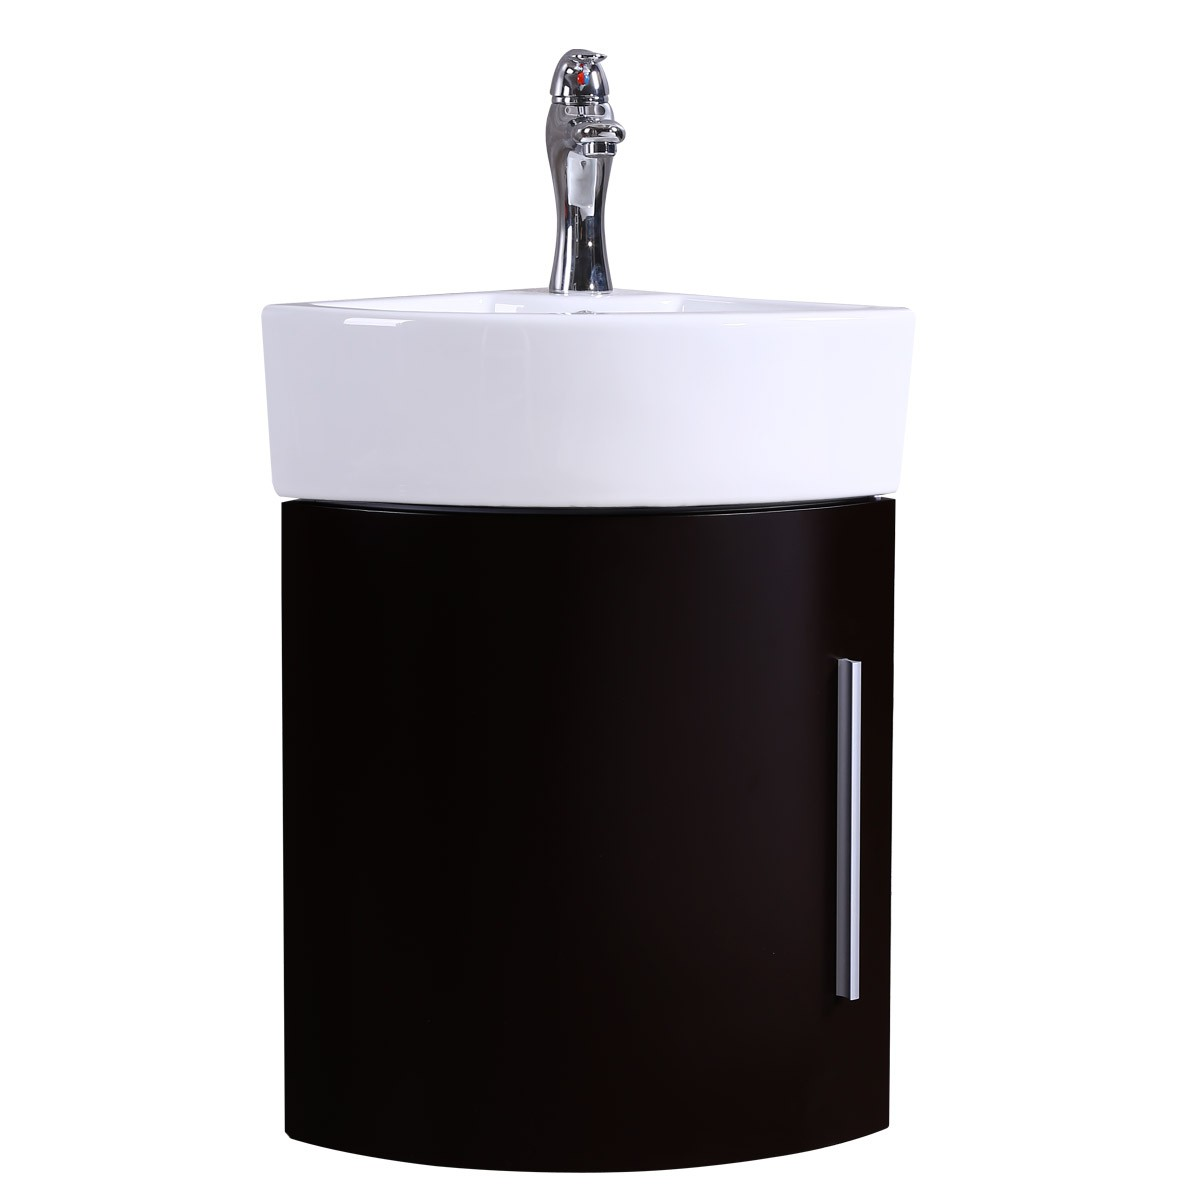 White and Black Wall Mount Corner Bathroom Vanity Cabinet Sink Bathroom Cabinet Sink Vanity Sinks For Bathrooms Wall Mount Cabinet Sink